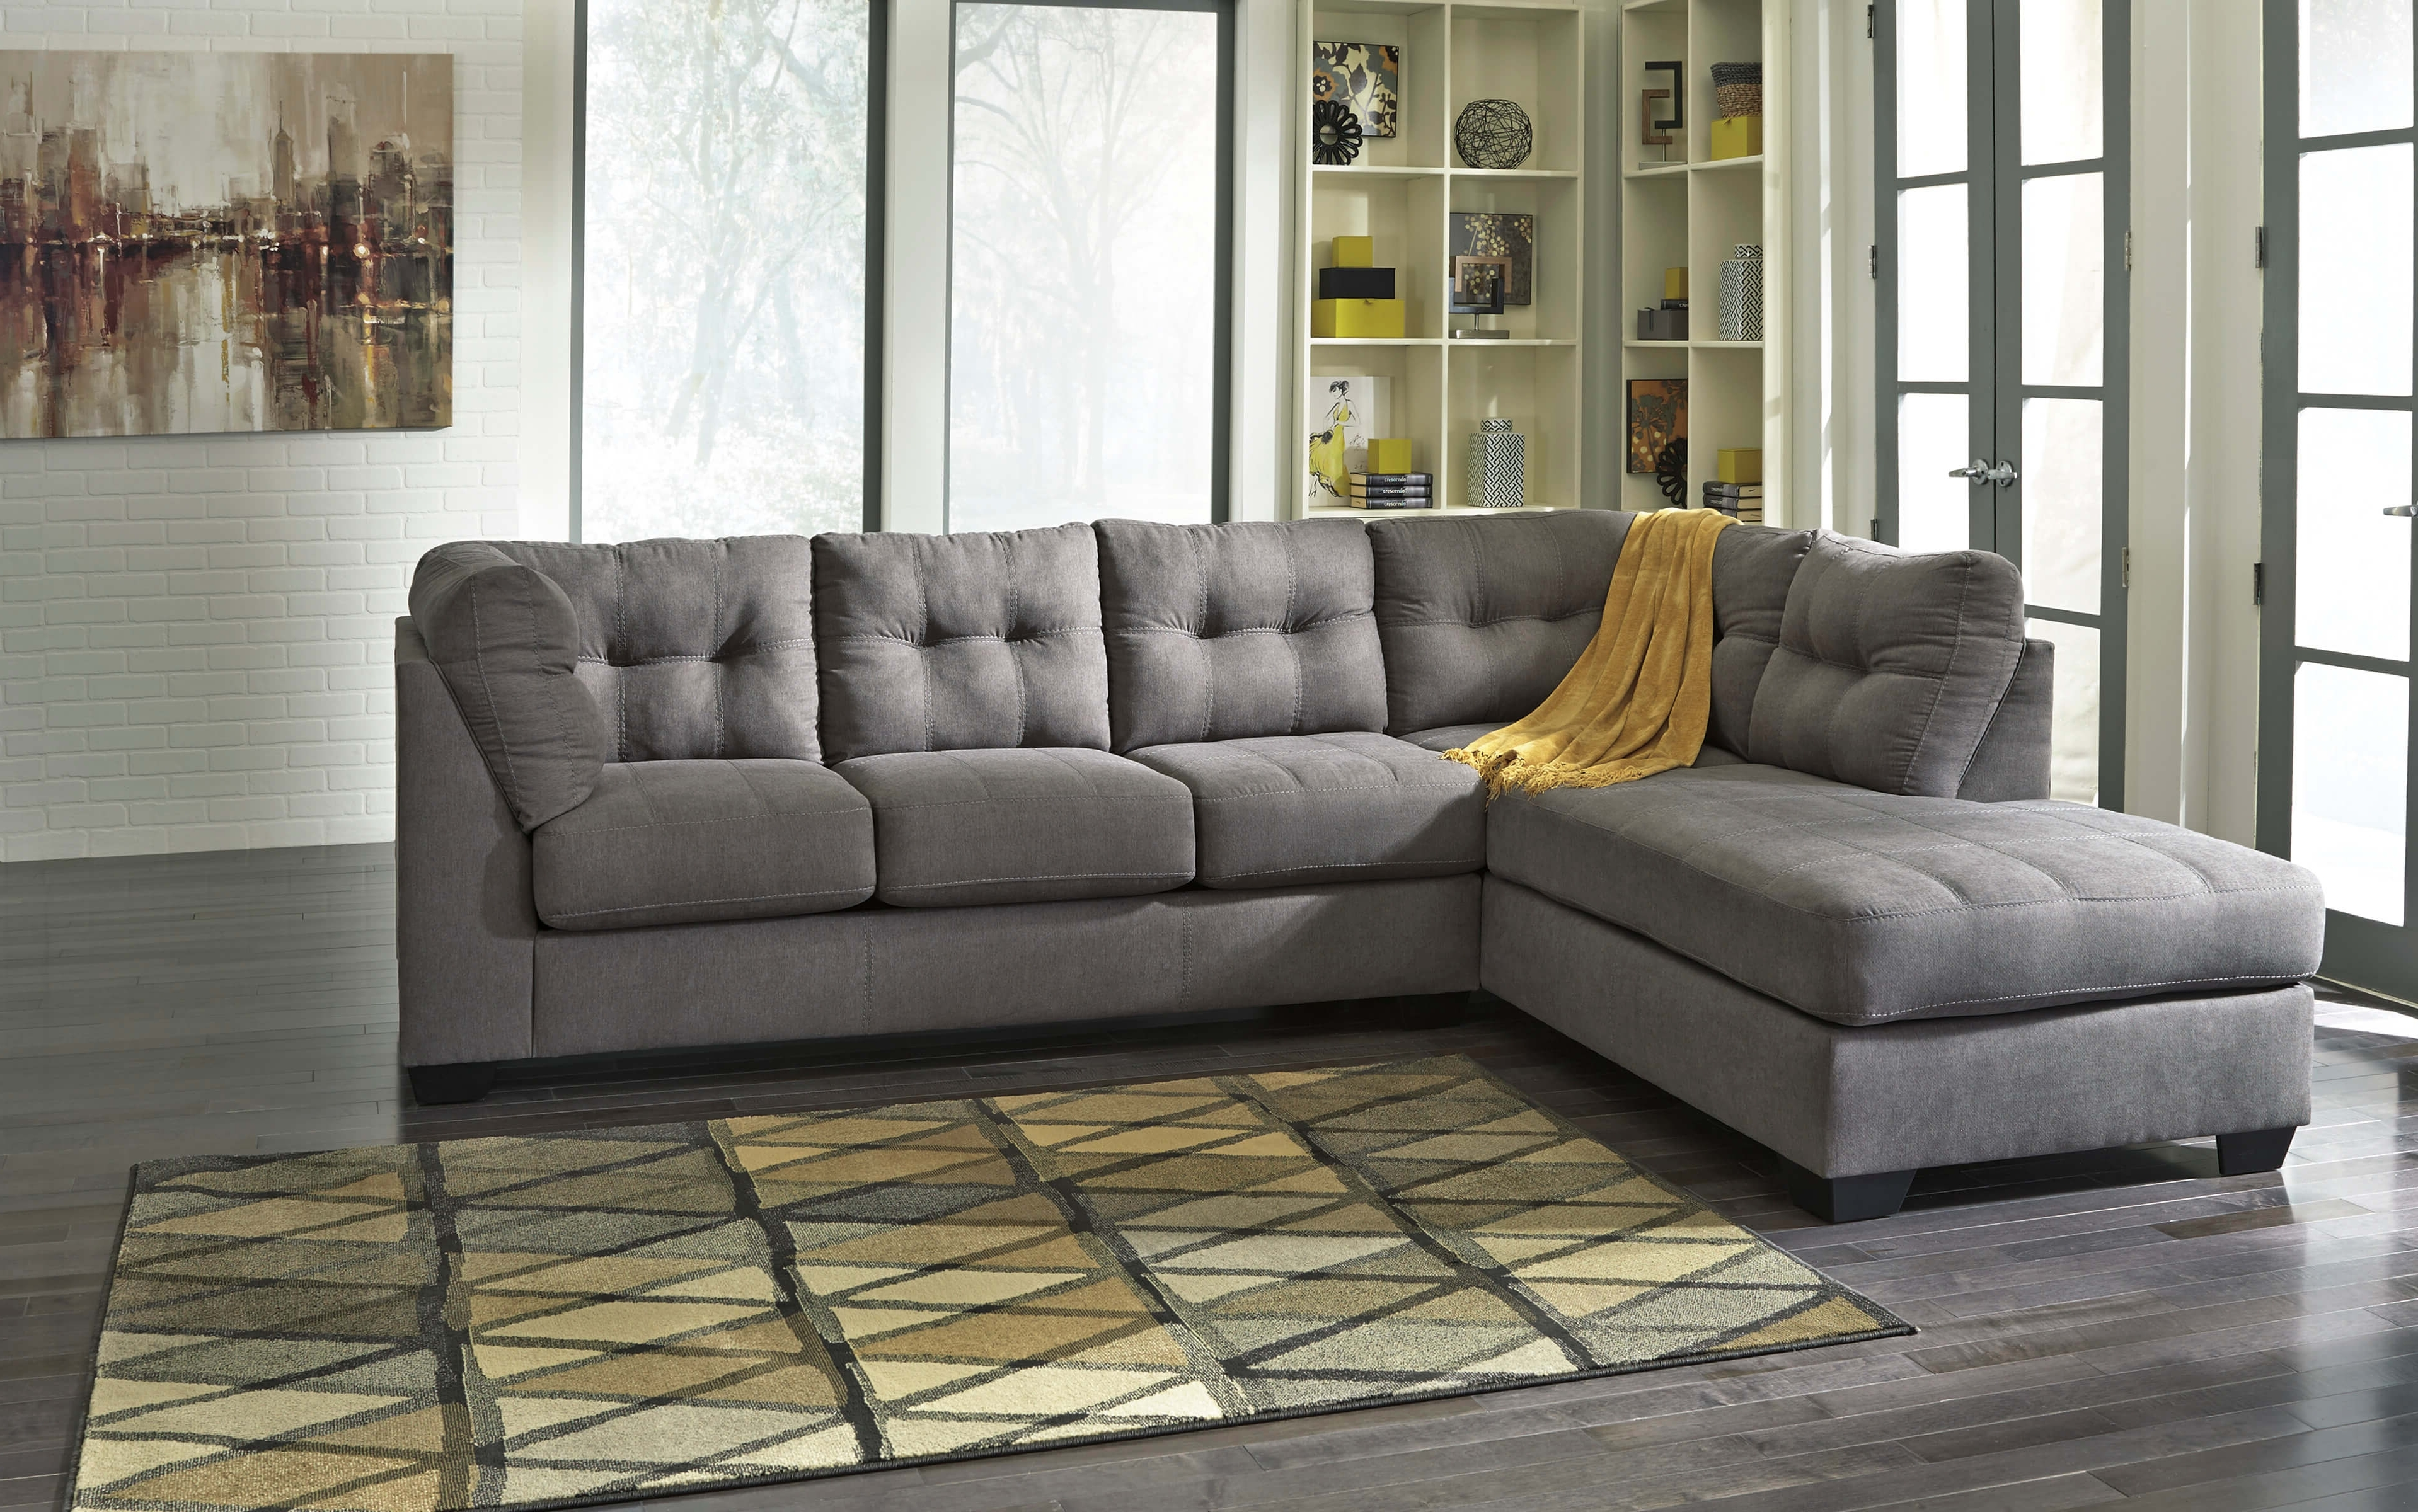 Fashionable Nebraska Furniture Mart Loveseats Mrs B's Clearance Discount In Kanes Sectional Sofas (View 9 of 15)